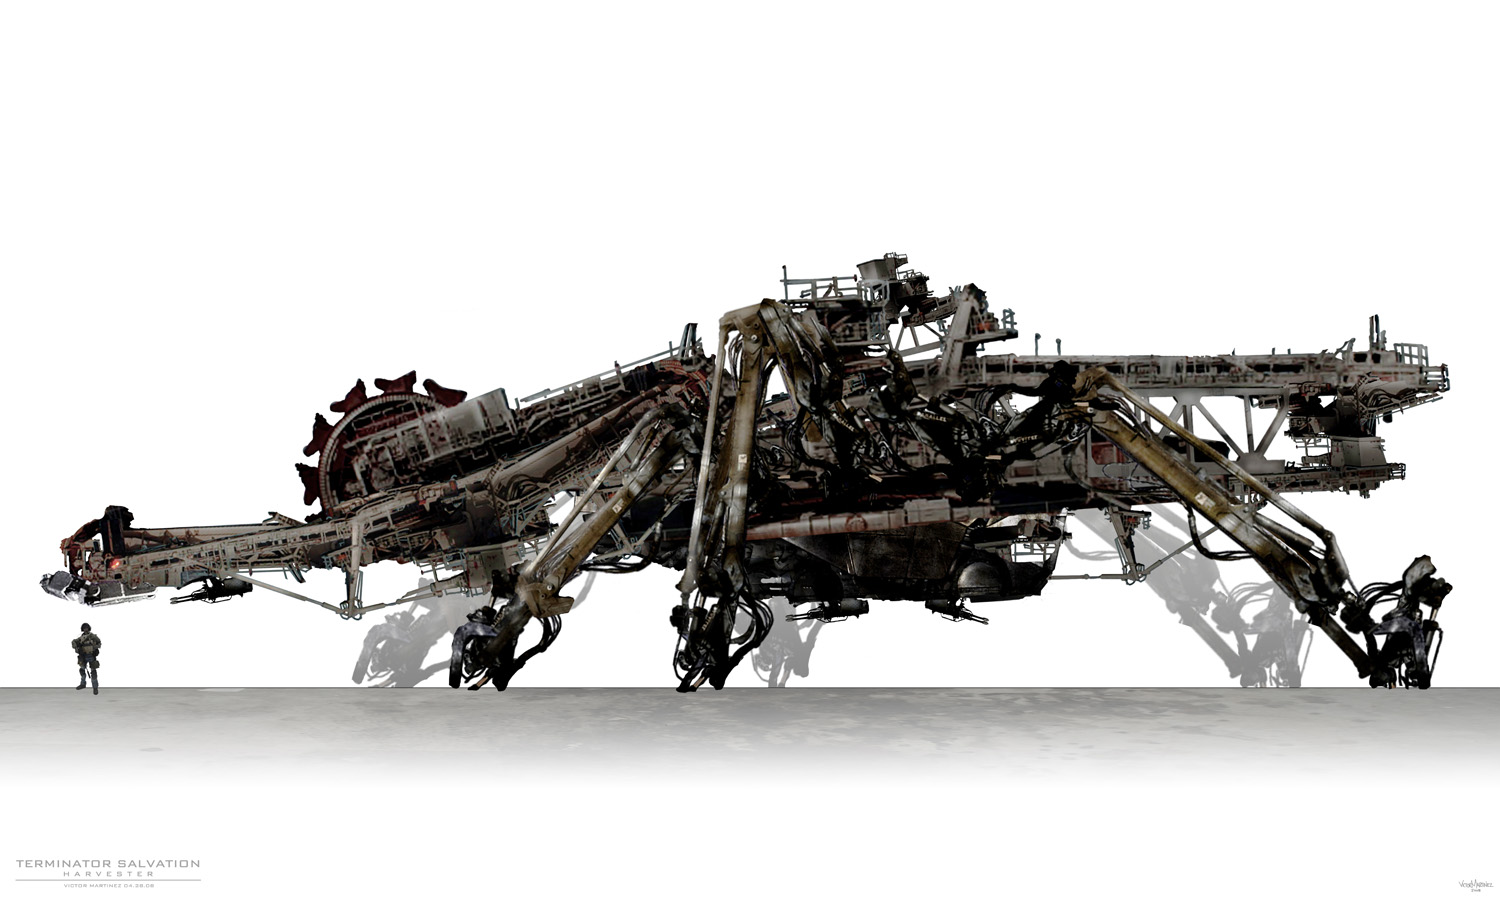 Terminator Salvation - Harvester